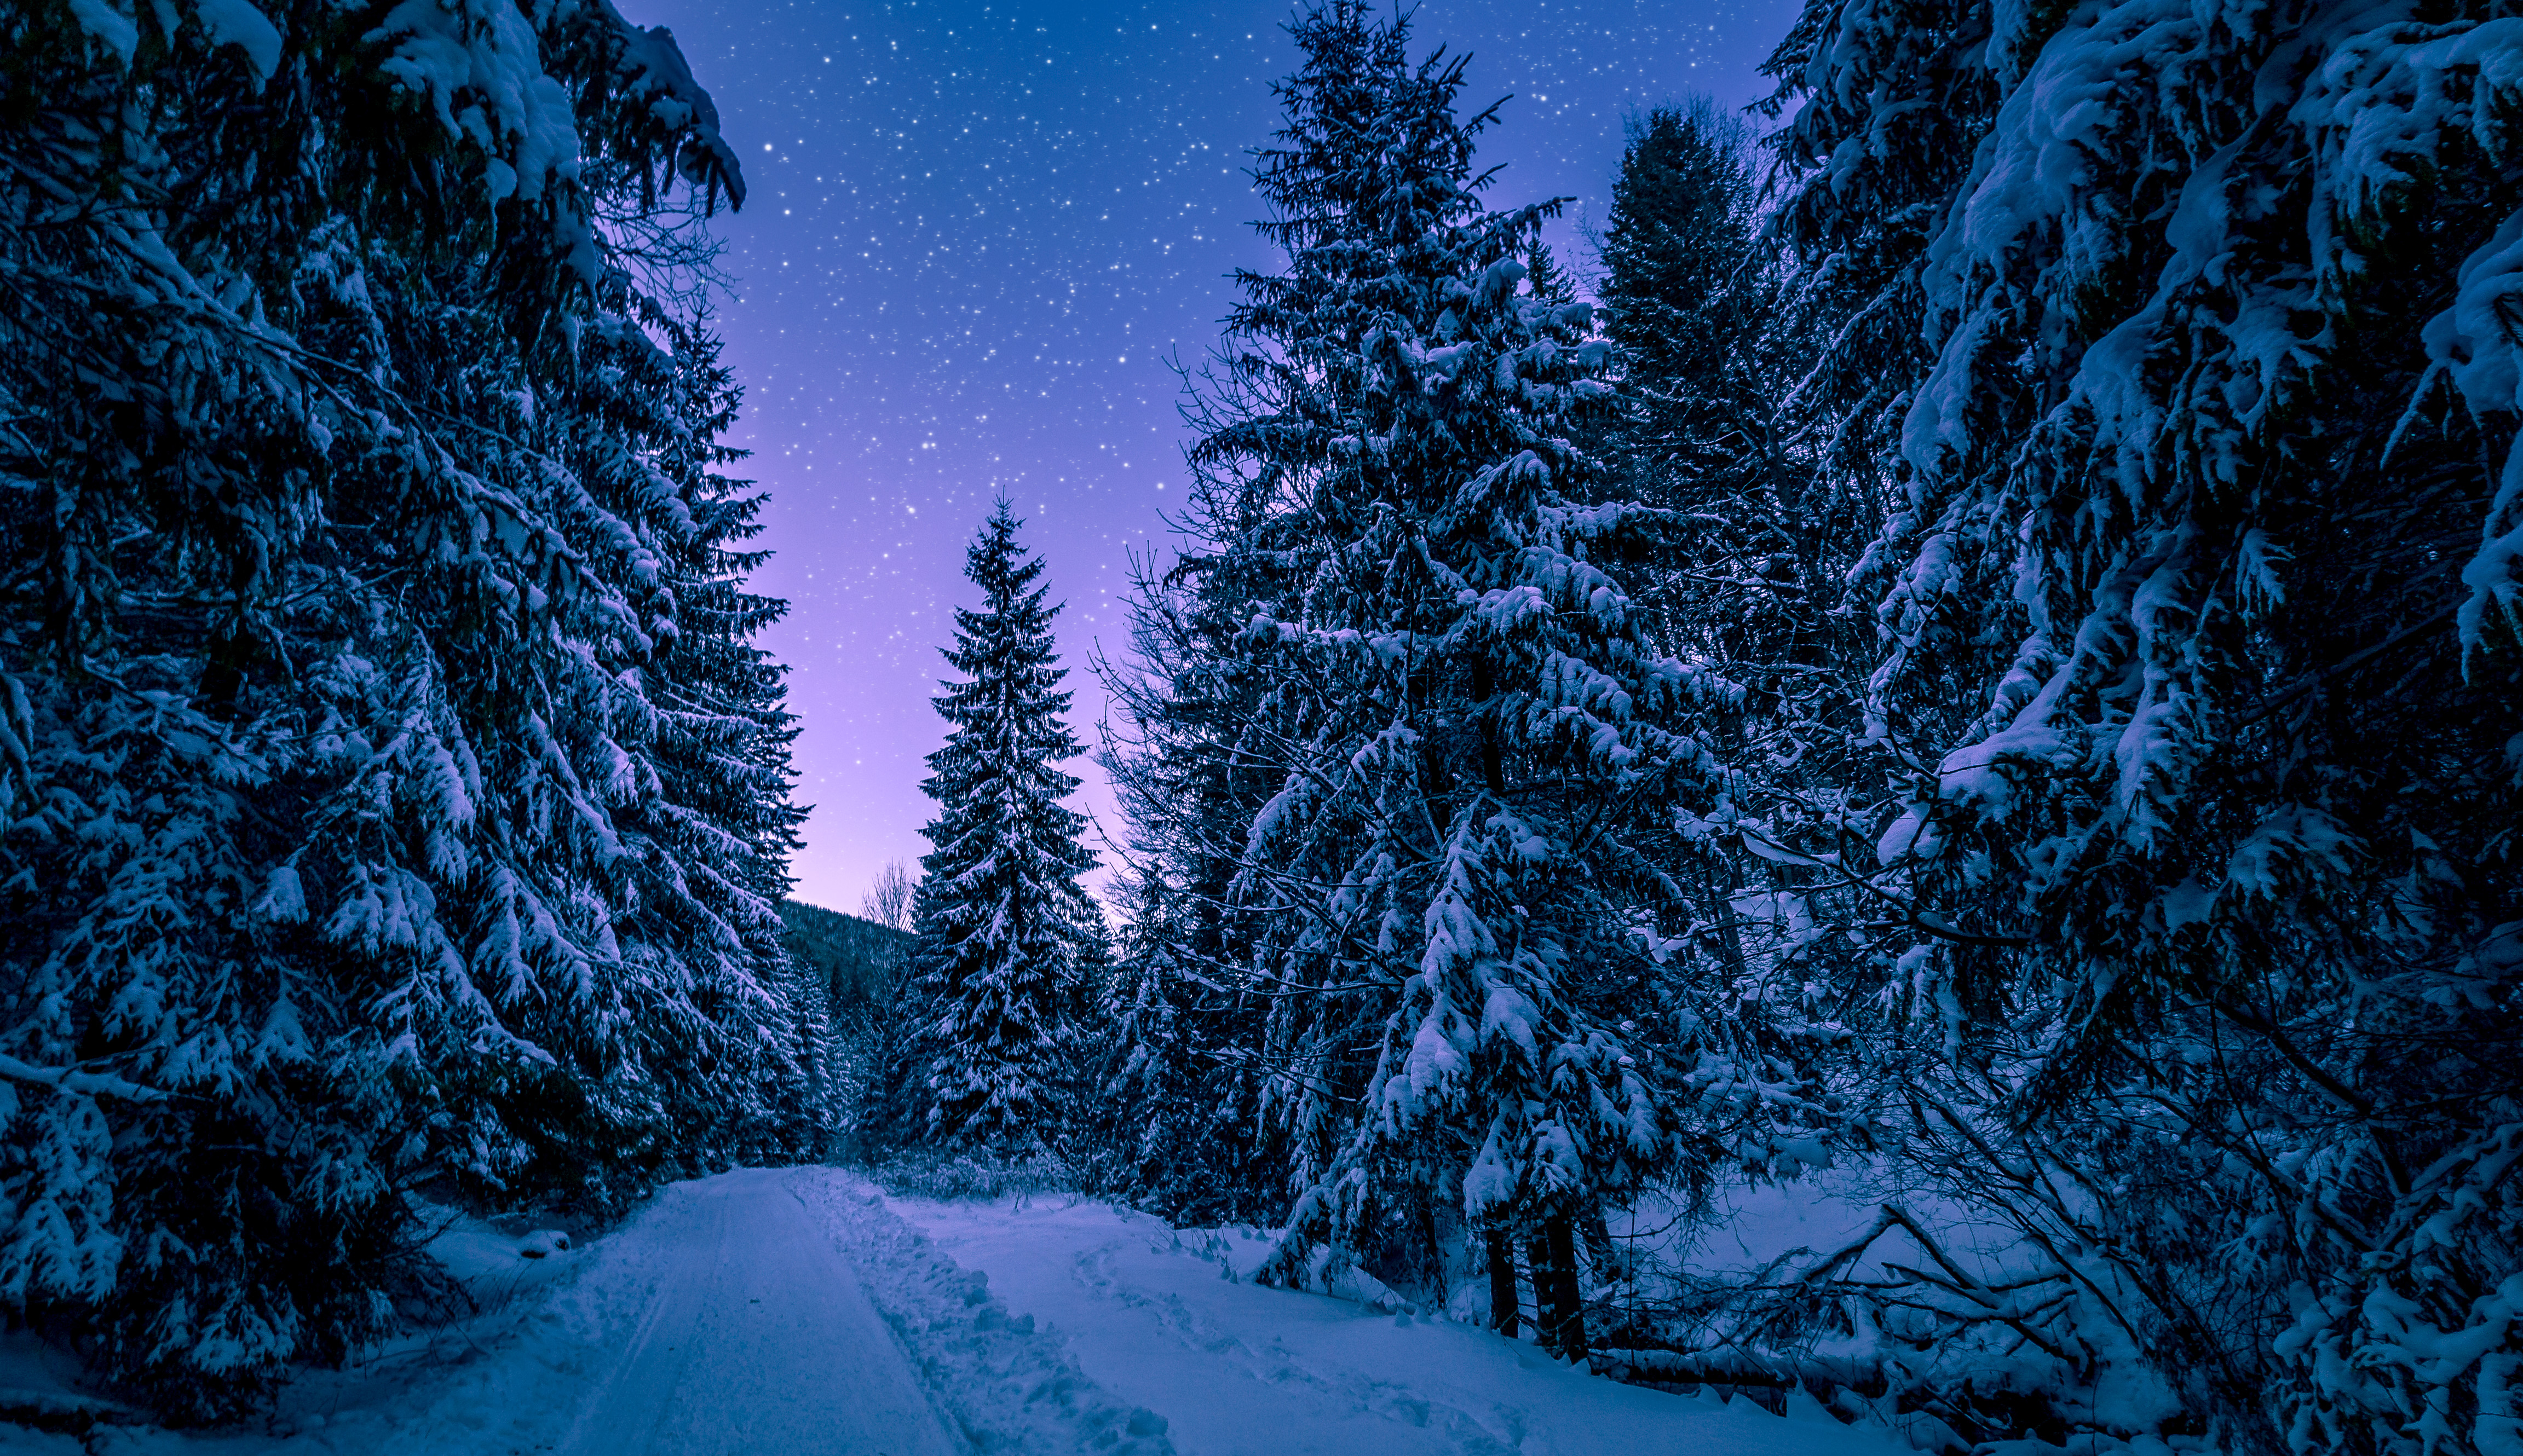 133696 download wallpaper Starry Sky, Winter, Nature, Snow, Road, Forest screensavers and pictures for free